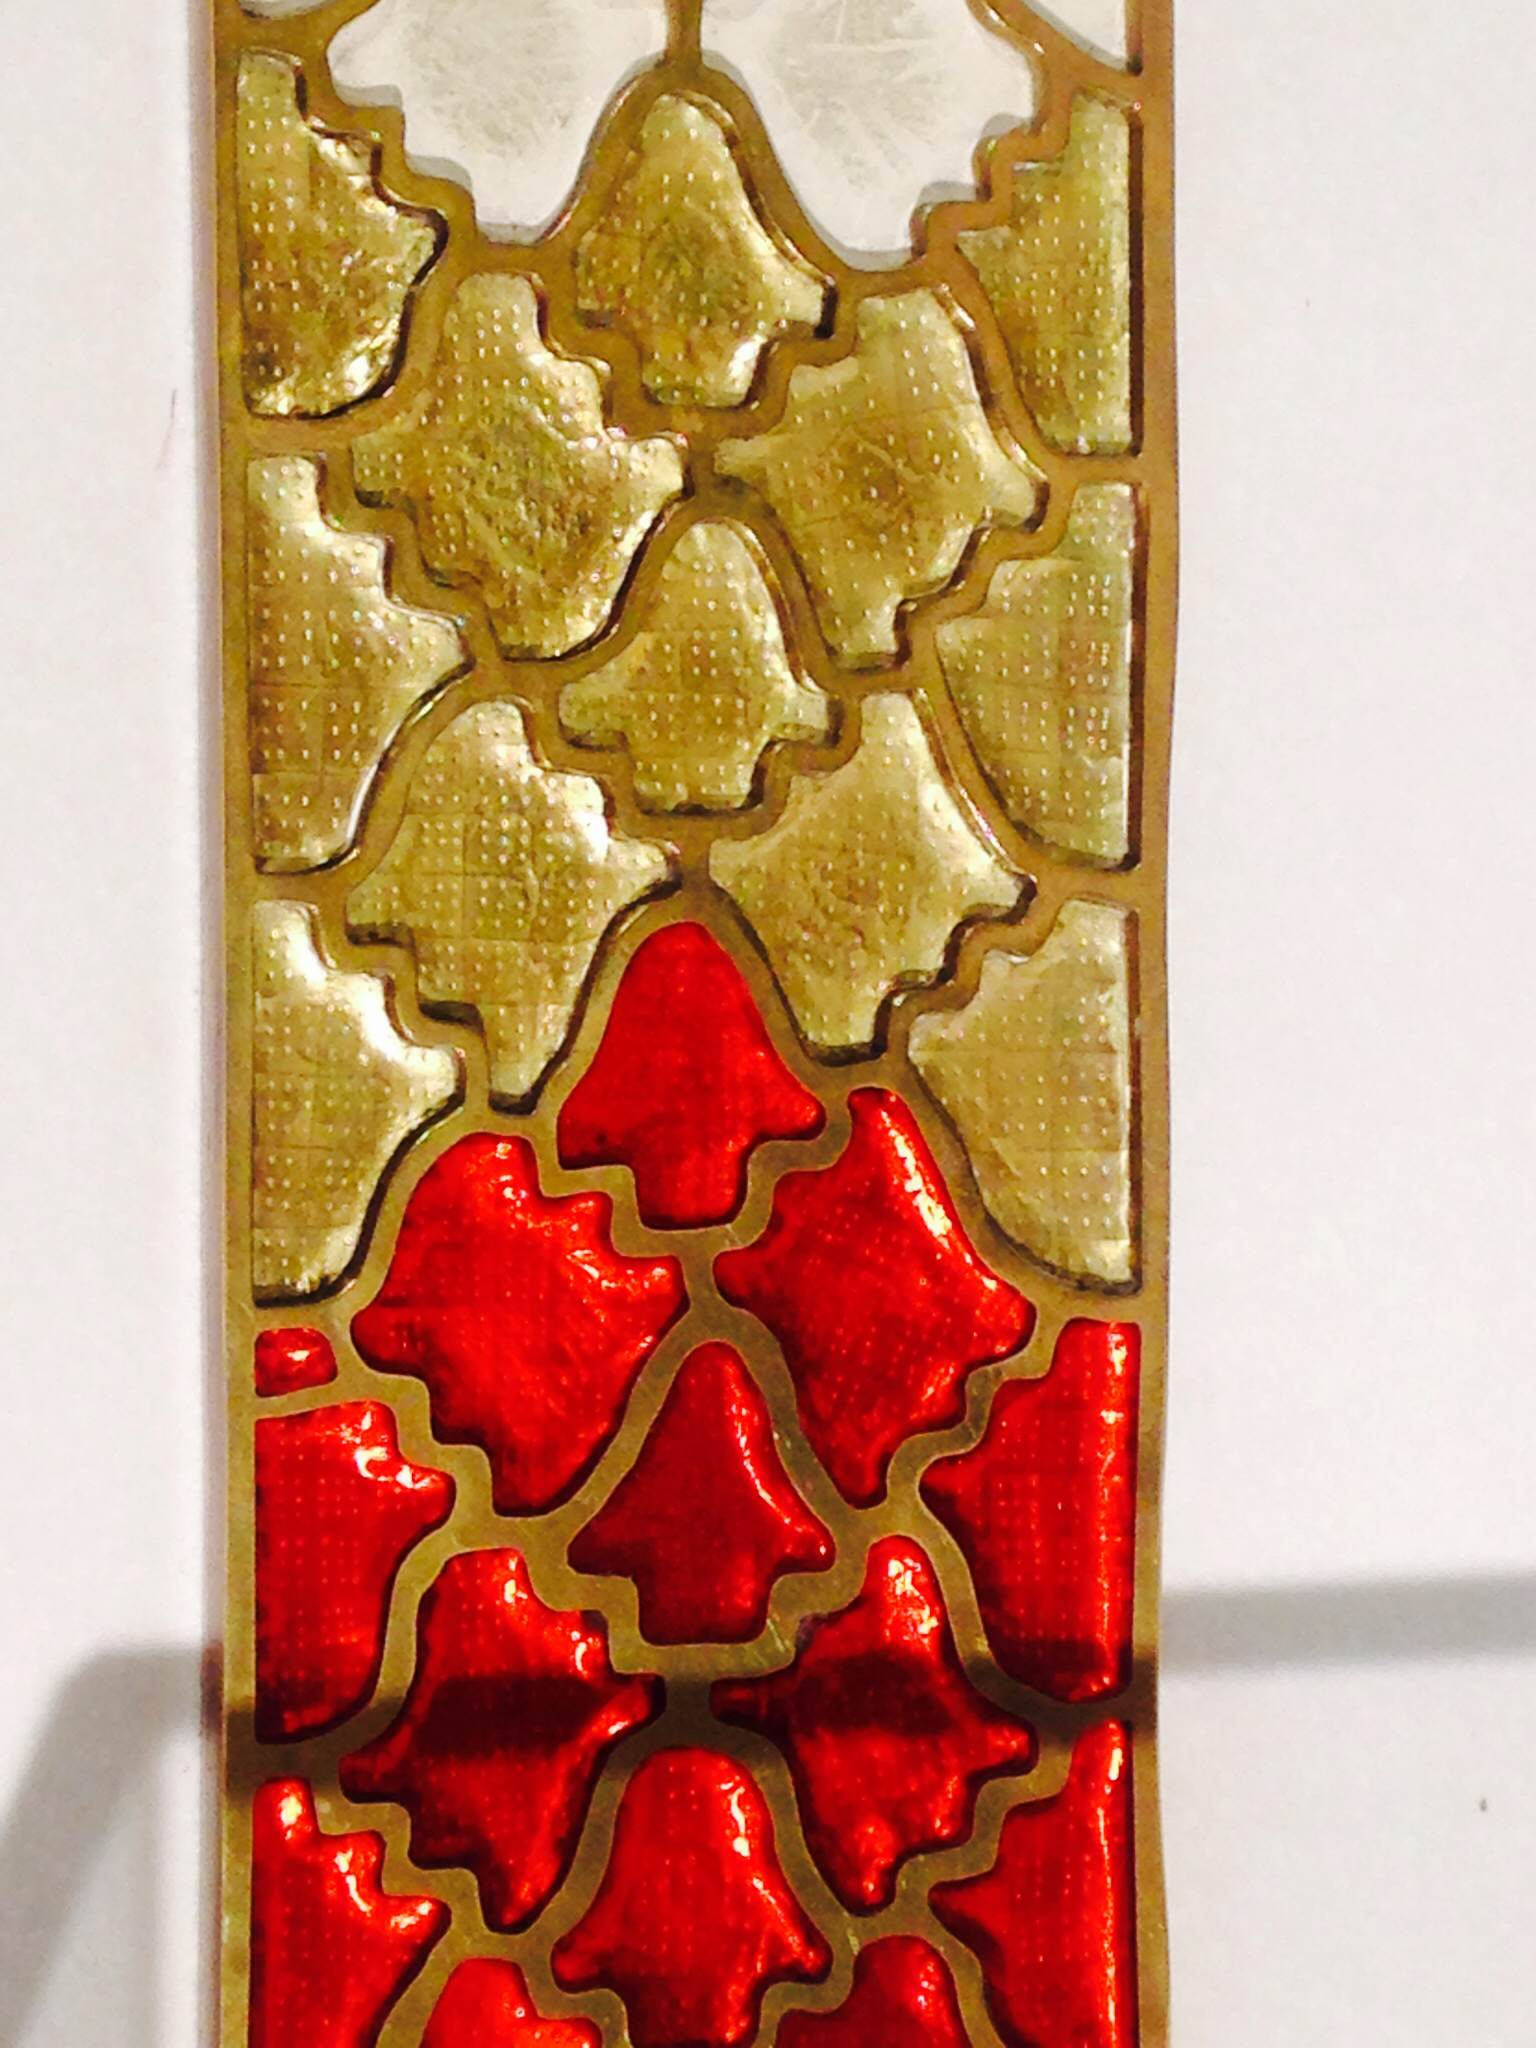 One of the artefacts that make up the Staffordshire Hoard: gold with inlaid garnets